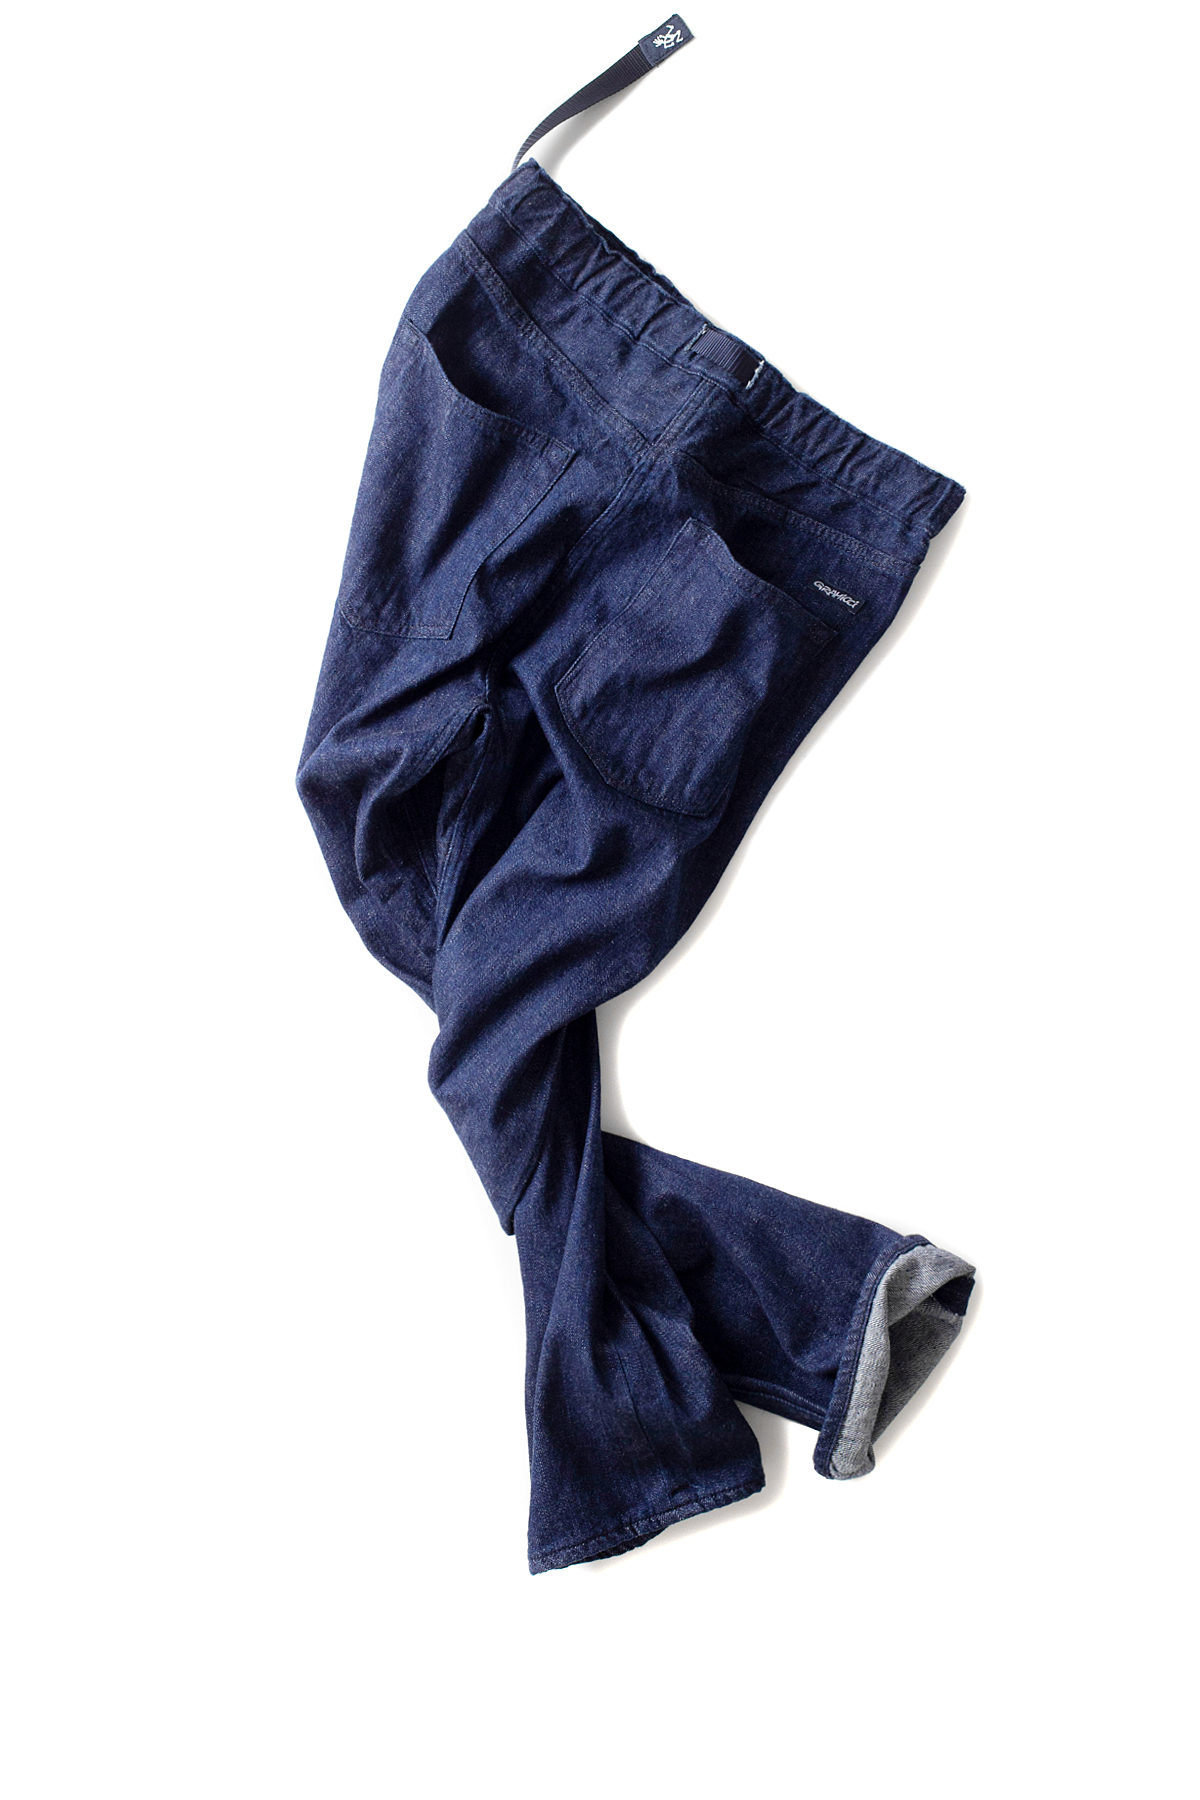 Gramicci x Ordinary fits : Loose Denim Pants (One Wash)